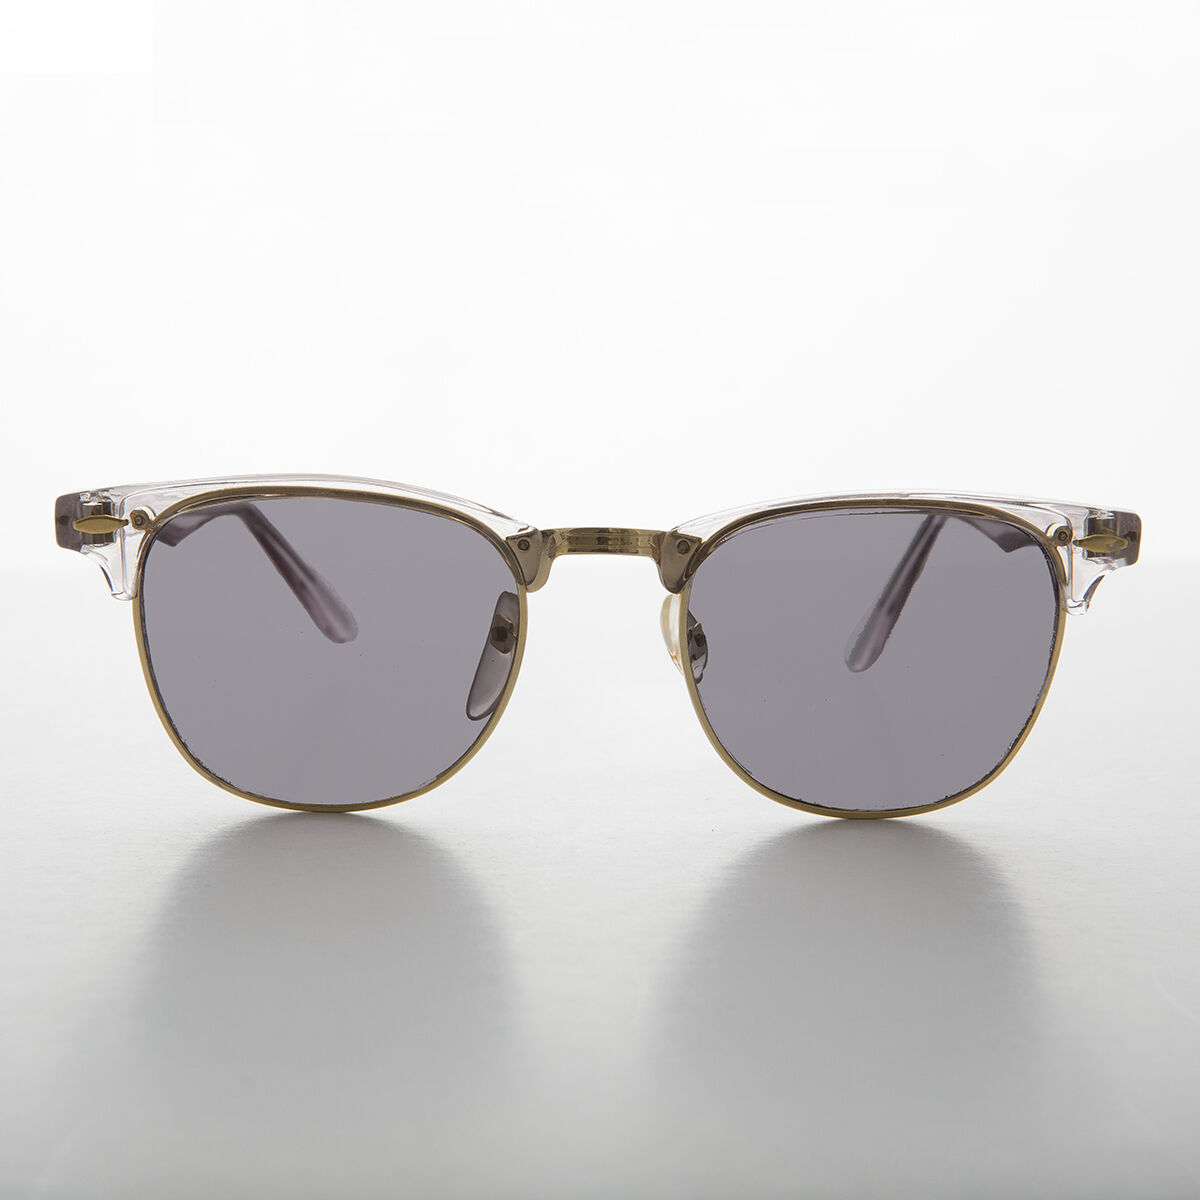 925f6005985 Gray Tinted Half Frame Classic Horn Rim Vintage Sunglass - Brooks ...